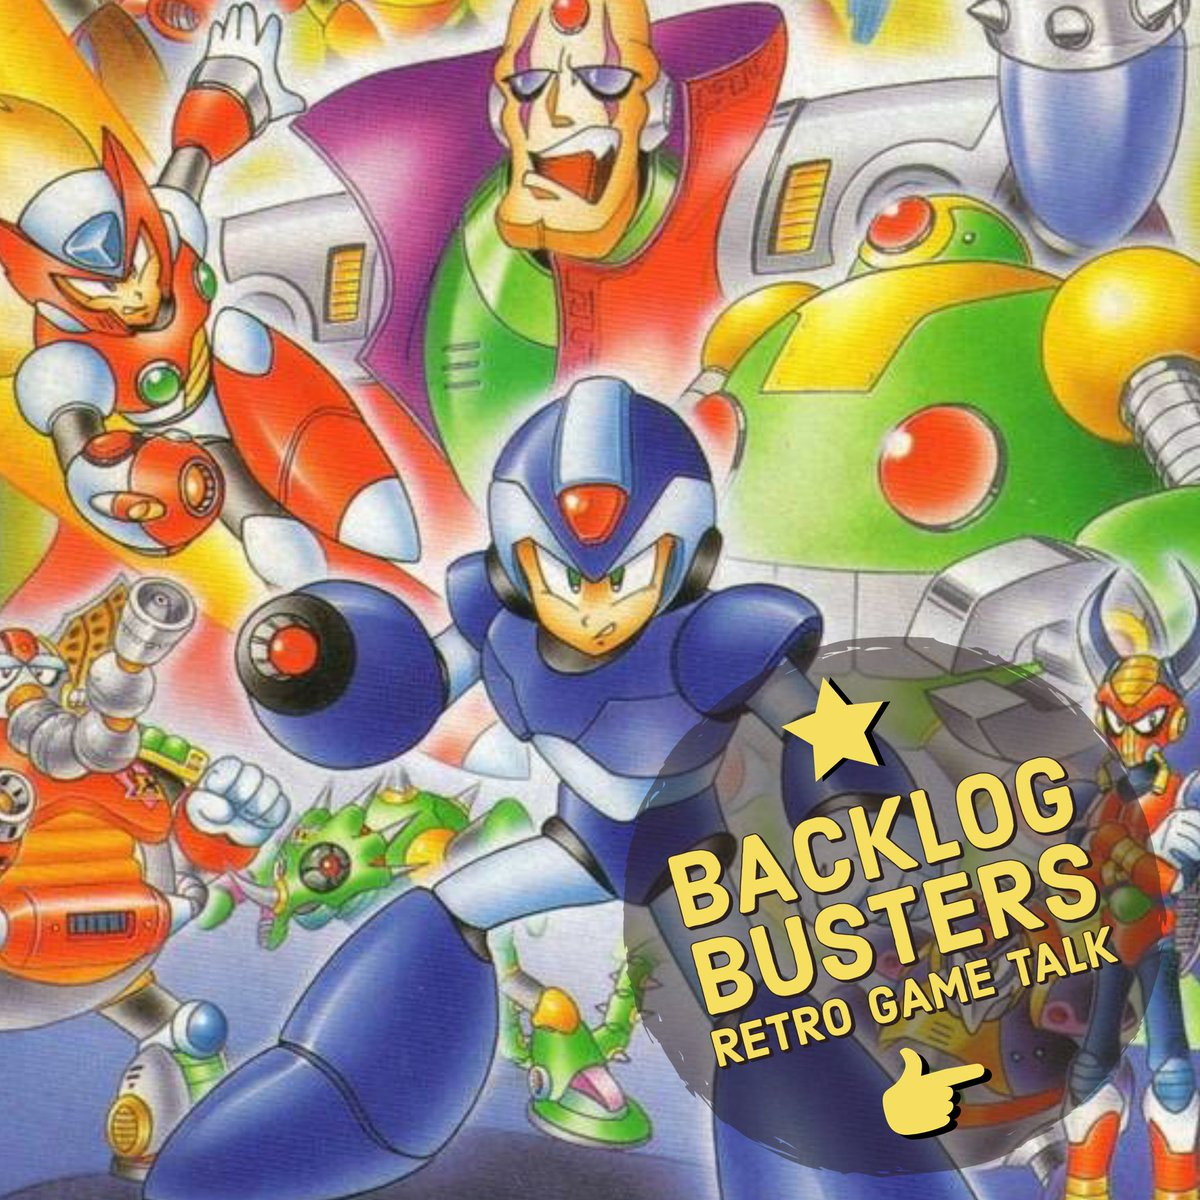 Super excited for the new #RetroGameTalk series on the @backlog_busters! Between episodes we'll be playing retro games and waxing poetic about them!  In the first episode @BlazeKnight0923 and myself discuss the classic Mega Man X and its direct sequel X2!  https://www.podbean.com/eu/pb-4tbqi-d48777…pic.twitter.com/1hmTxgllaP